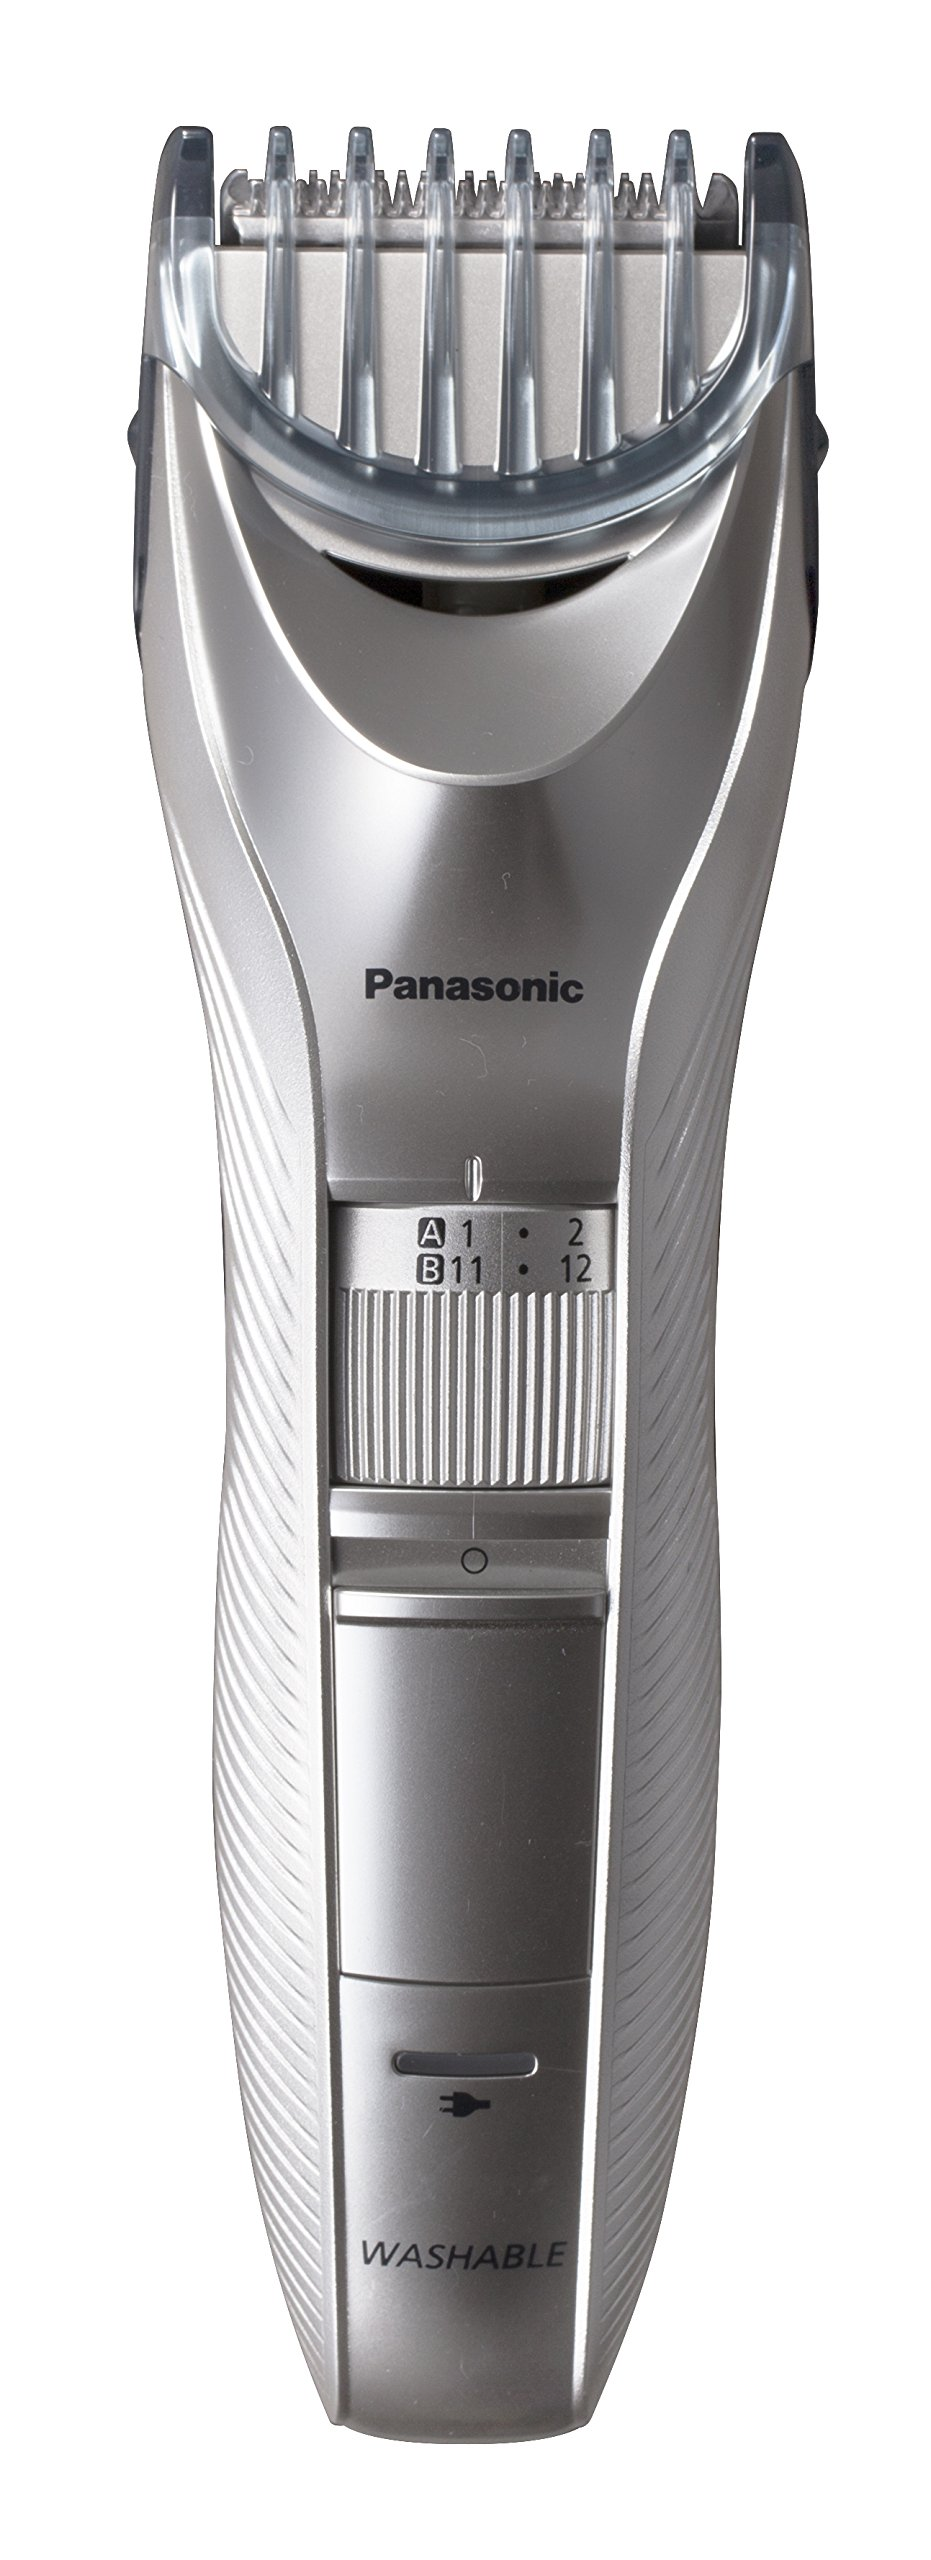 Panasonic ER-GC71 Beard and Hair Trimmer, Men's, Cordless/Corded Operation with 2 Comb Attachments and and 39 Adjustable Trim Settings, Washable